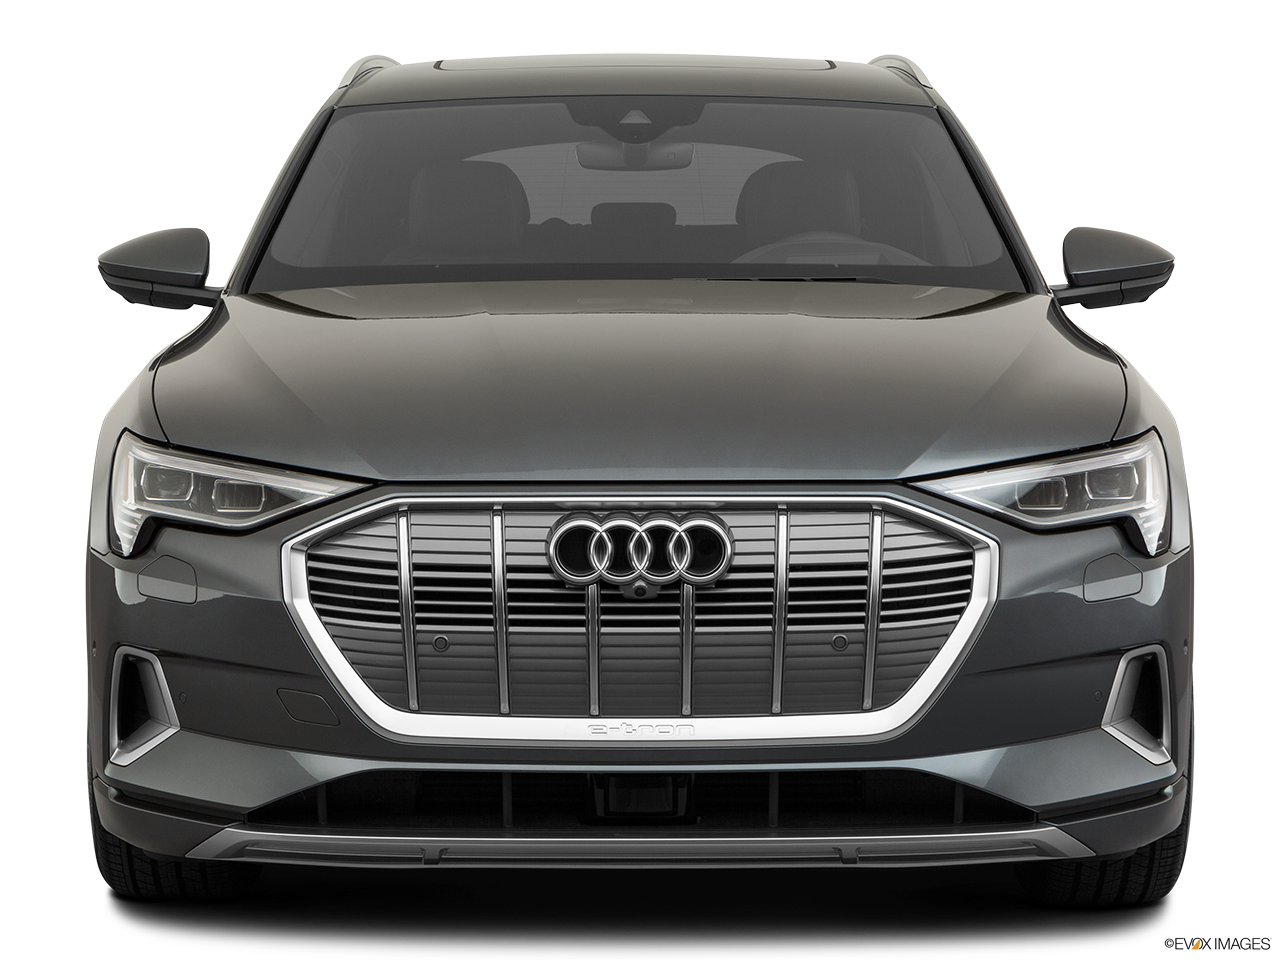 Front view of the Audi e-tron